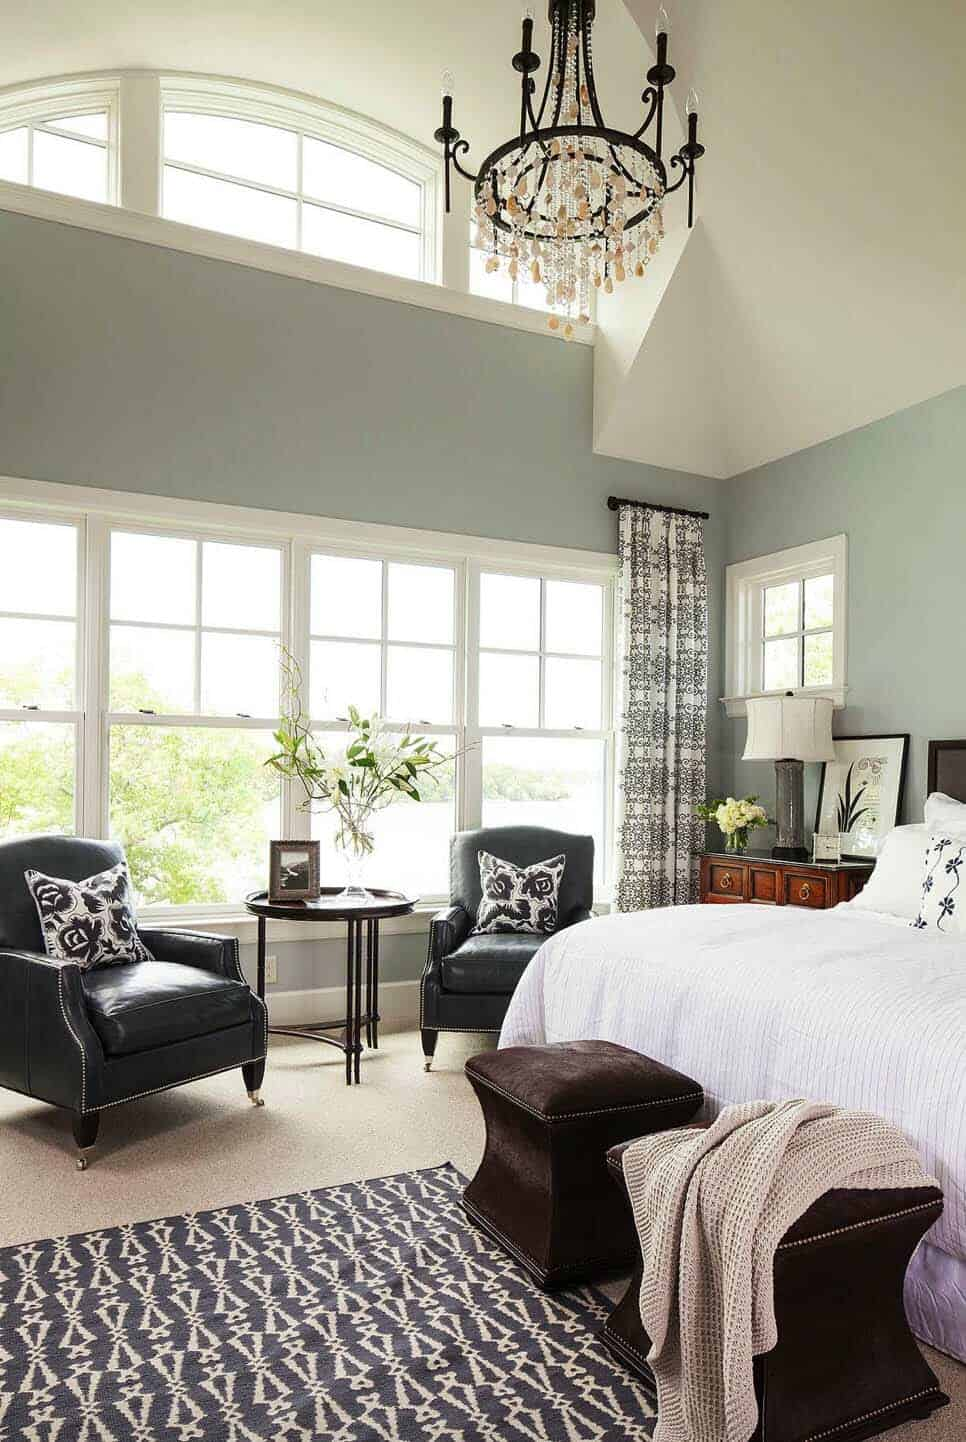 25 absolutely stunning master bedroom color scheme ideas on master bedroom wall color id=65648